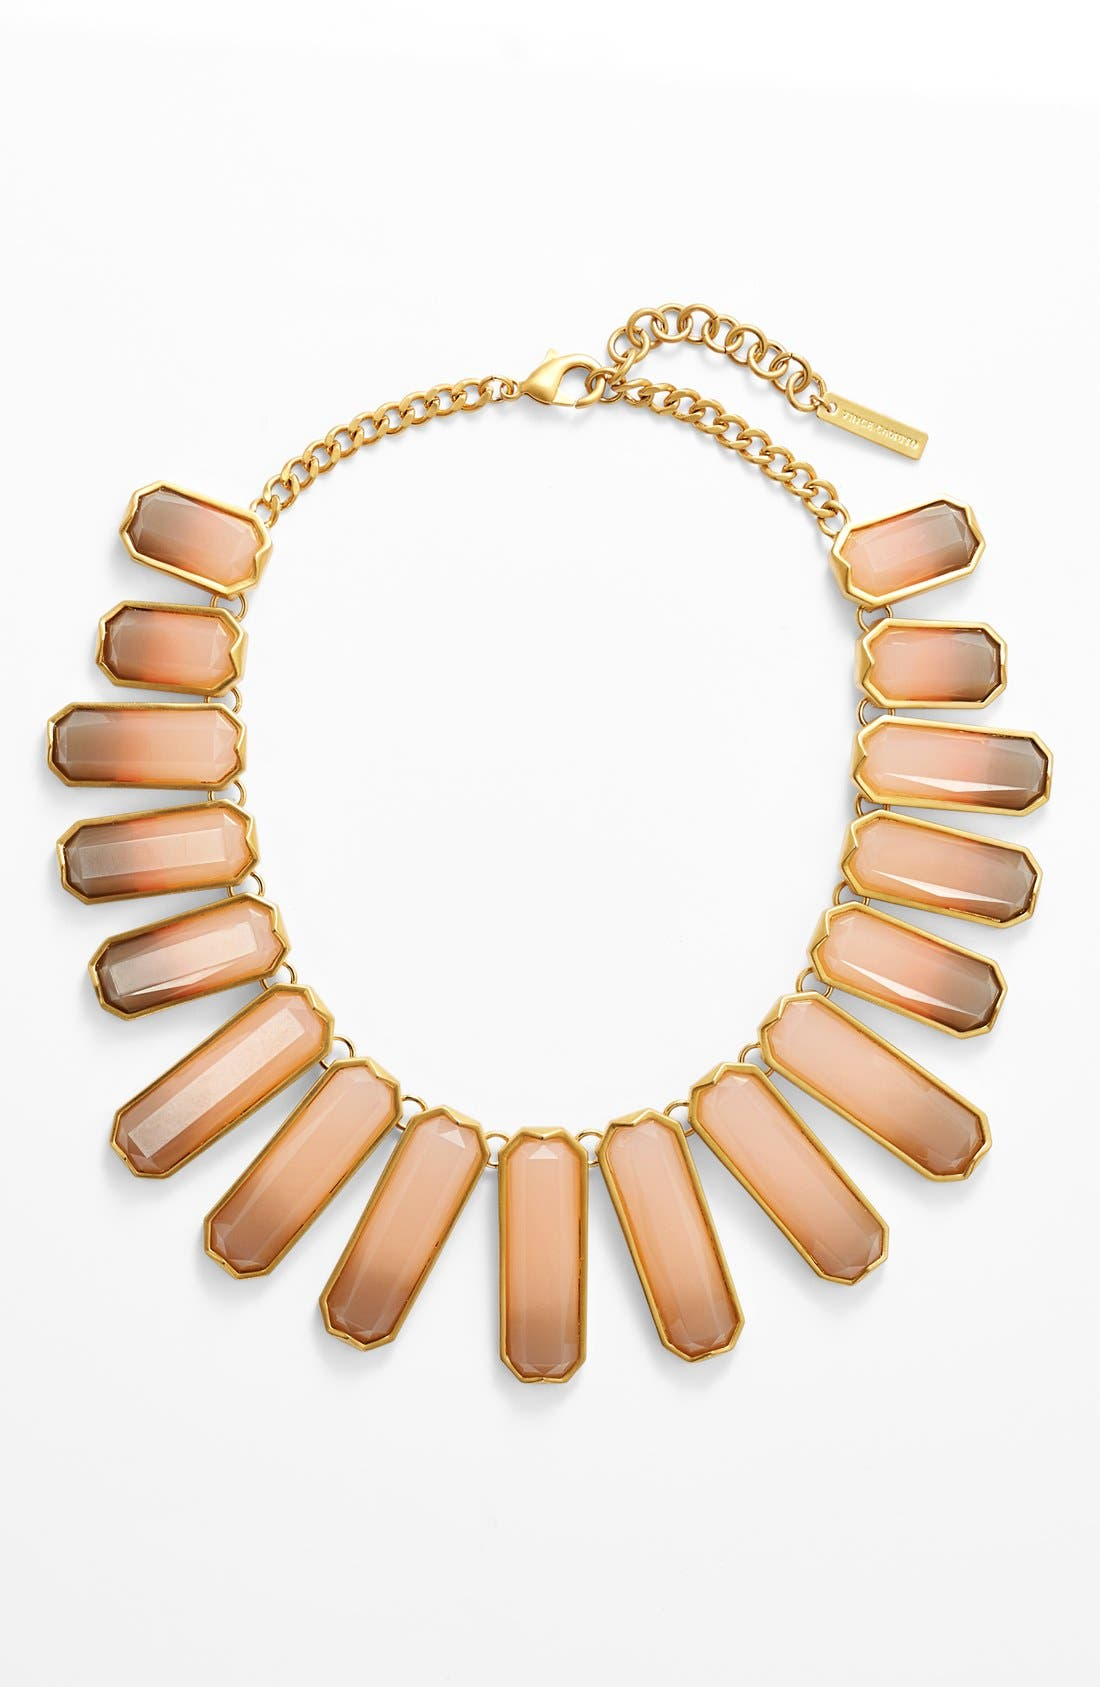 Main Image - Vince Camuto 'Ethereal Statement' Collar Necklace